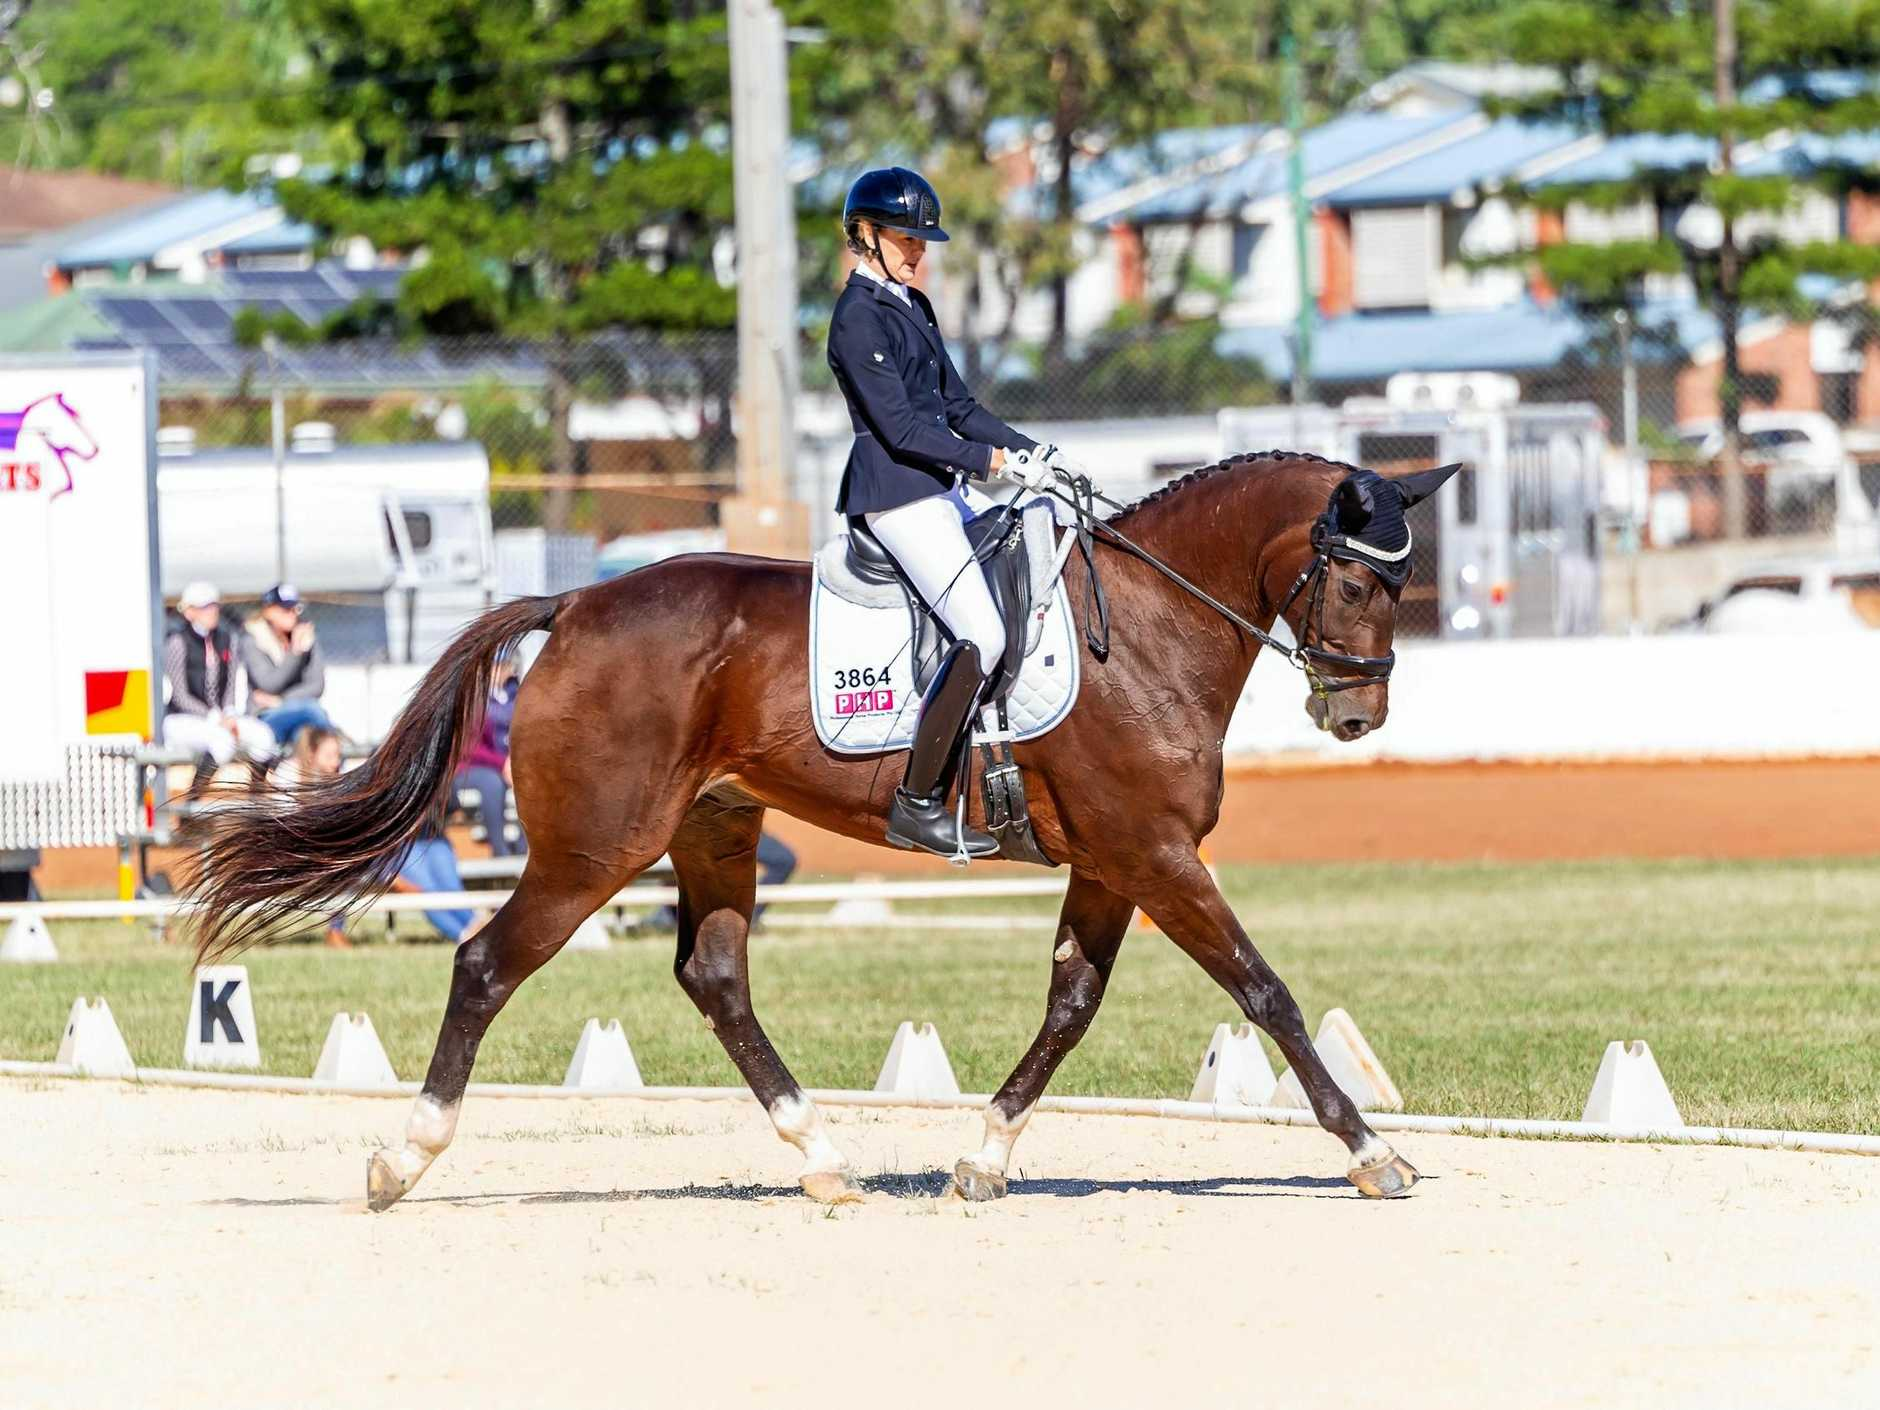 BIG LINE-UP: Caroline Bonney riding Battlestar Galactica took out the Elementary championship. More than 100 riders competed at the Horseland Ipswich Brenda Wittmann Classic 2-Star Regional Championship in Gatton.